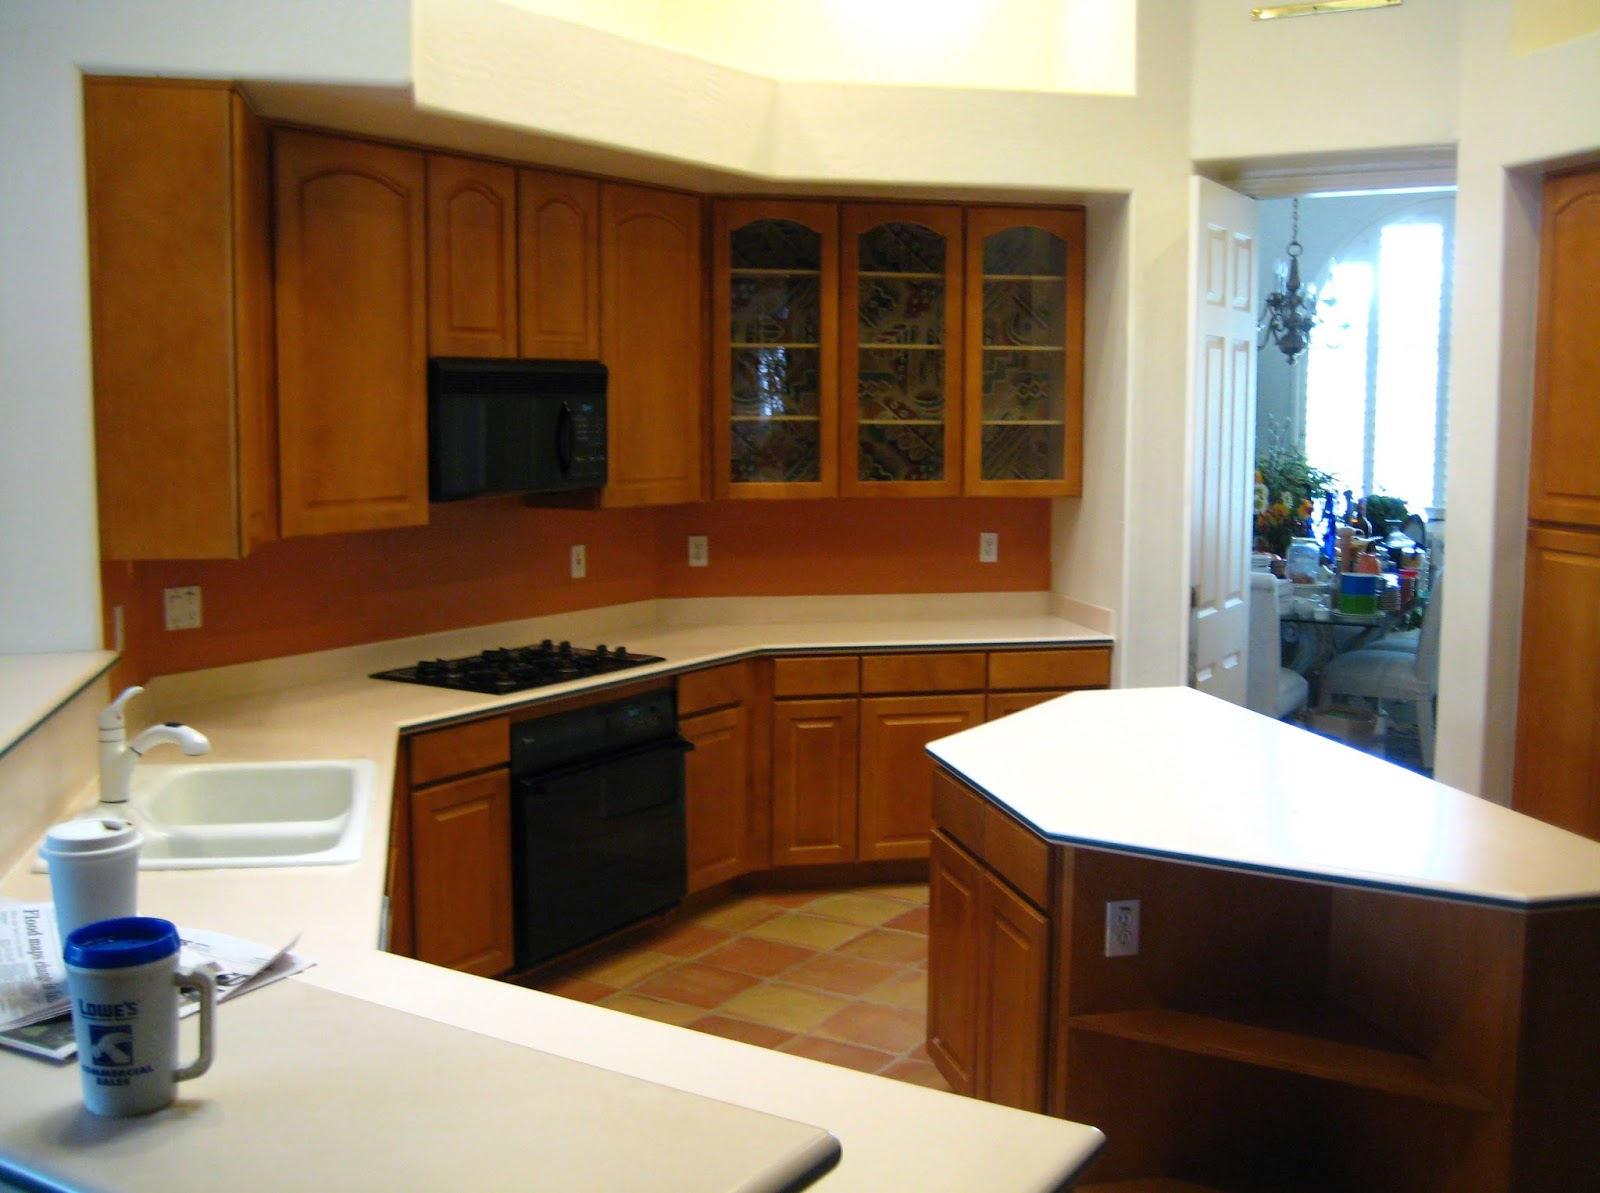 Do it yourself diy kitchen remodel on a budget home for Diy kitchen ideas on a budget